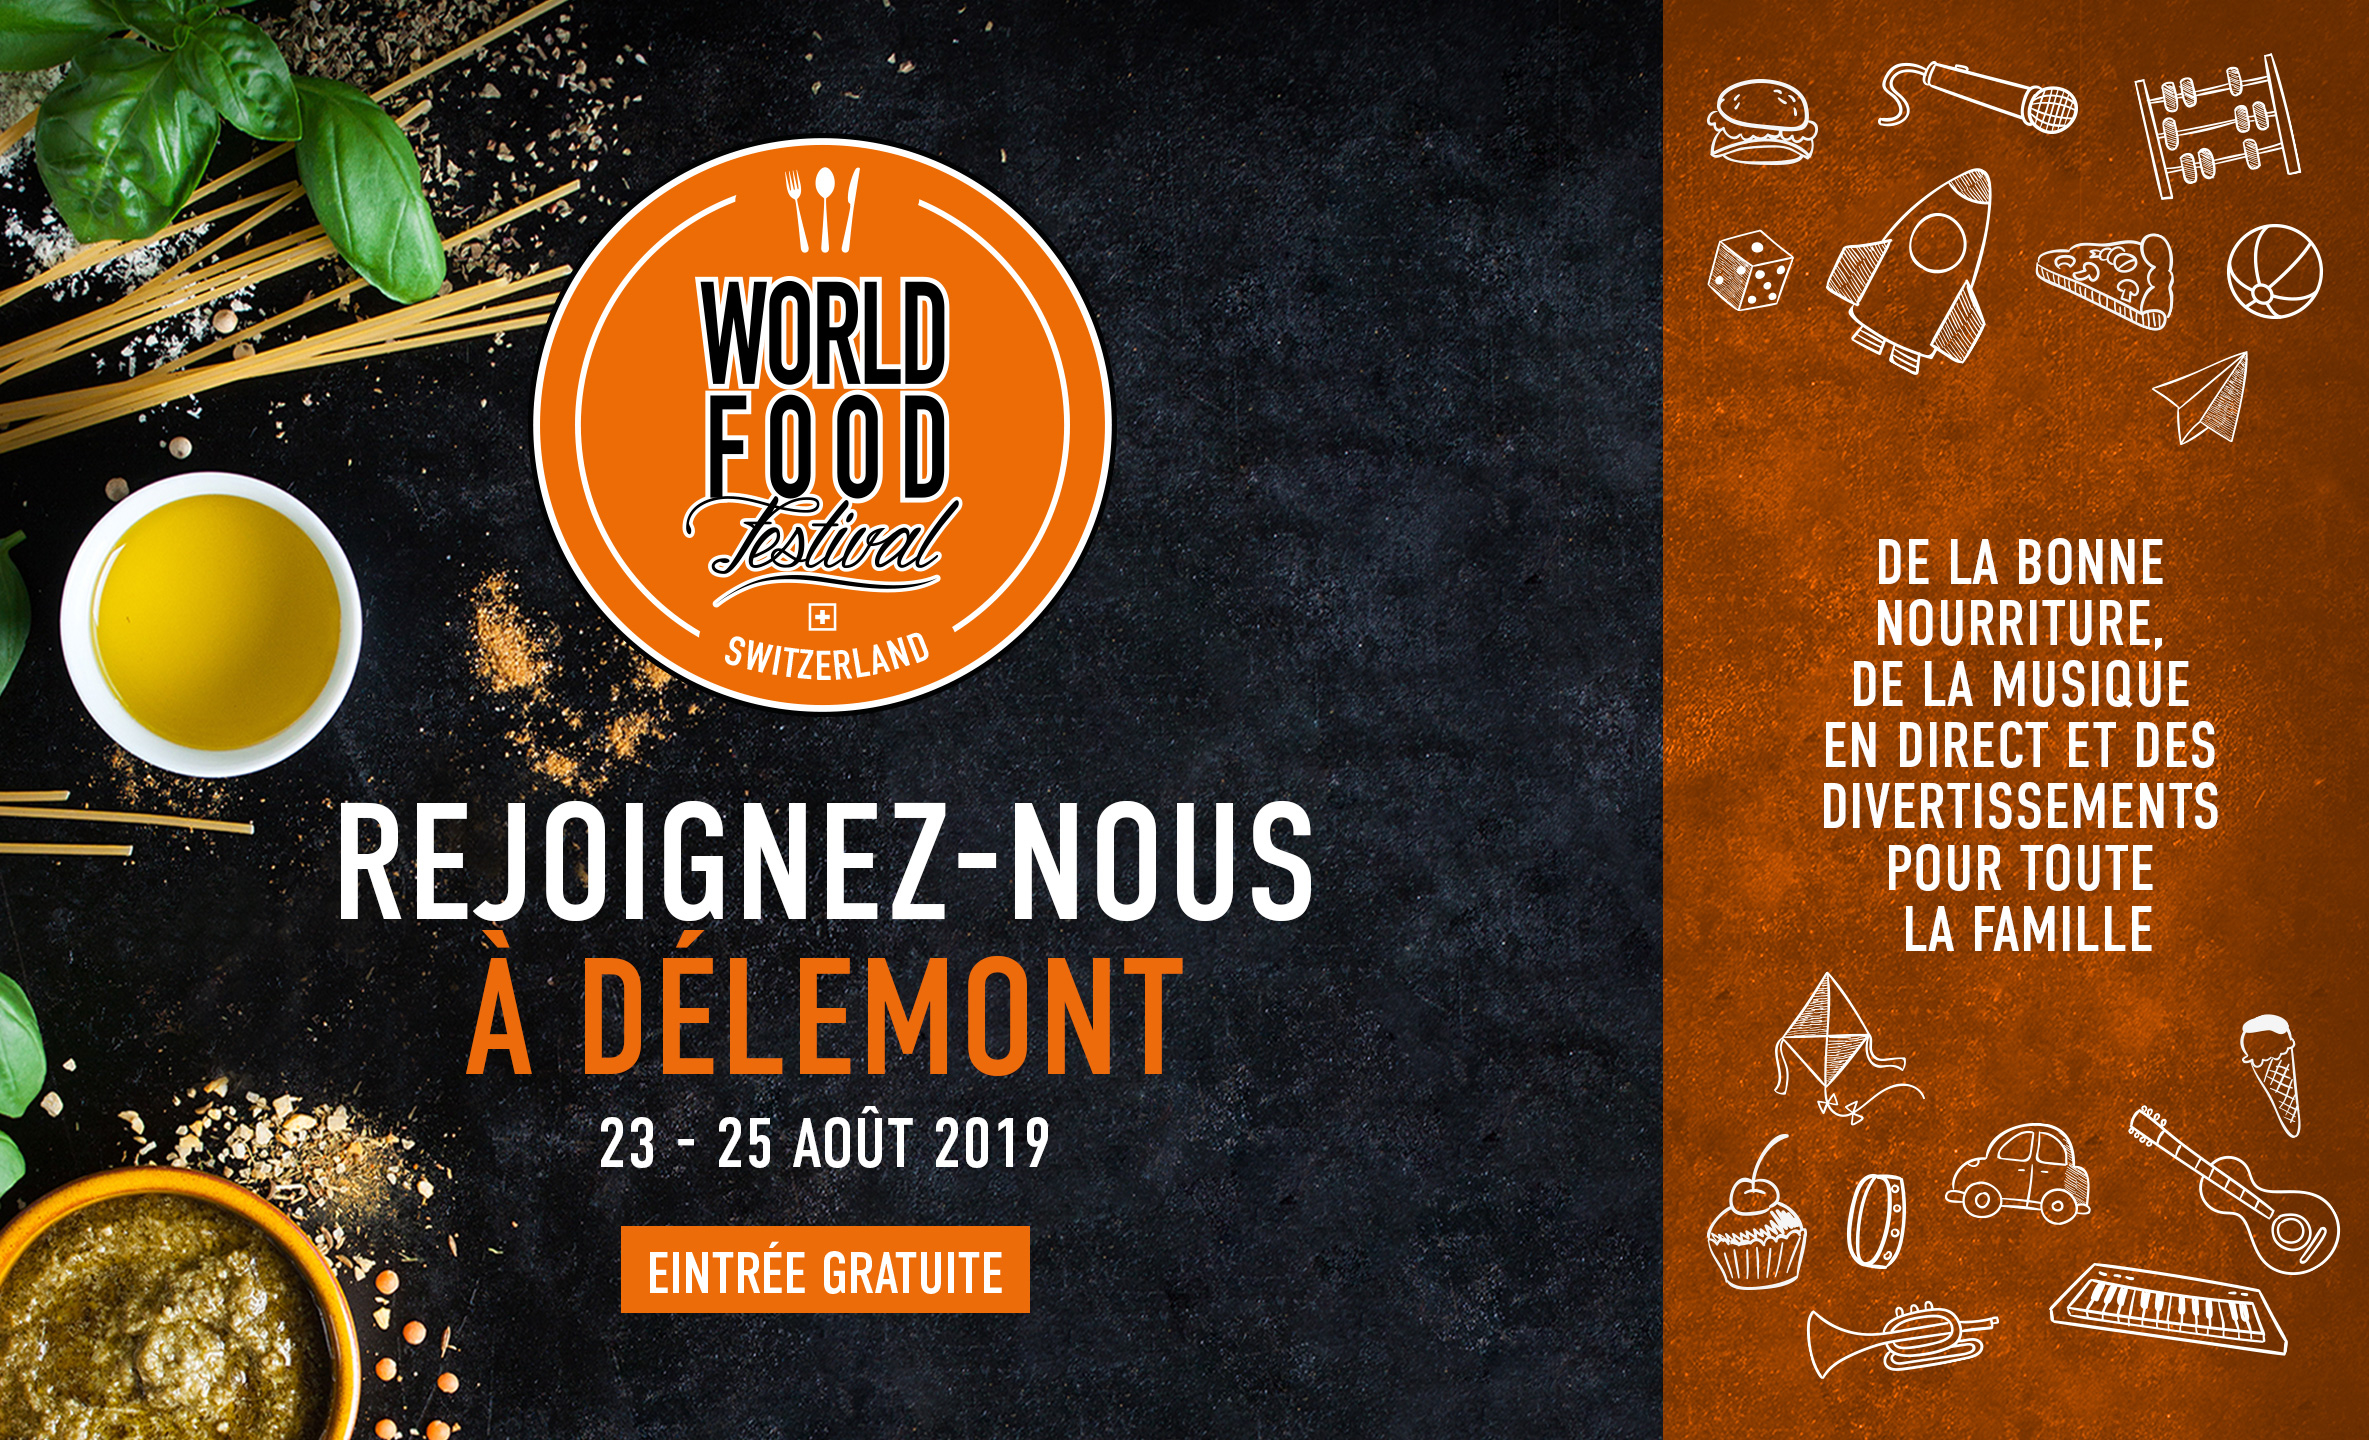 World Food Festival Delémont